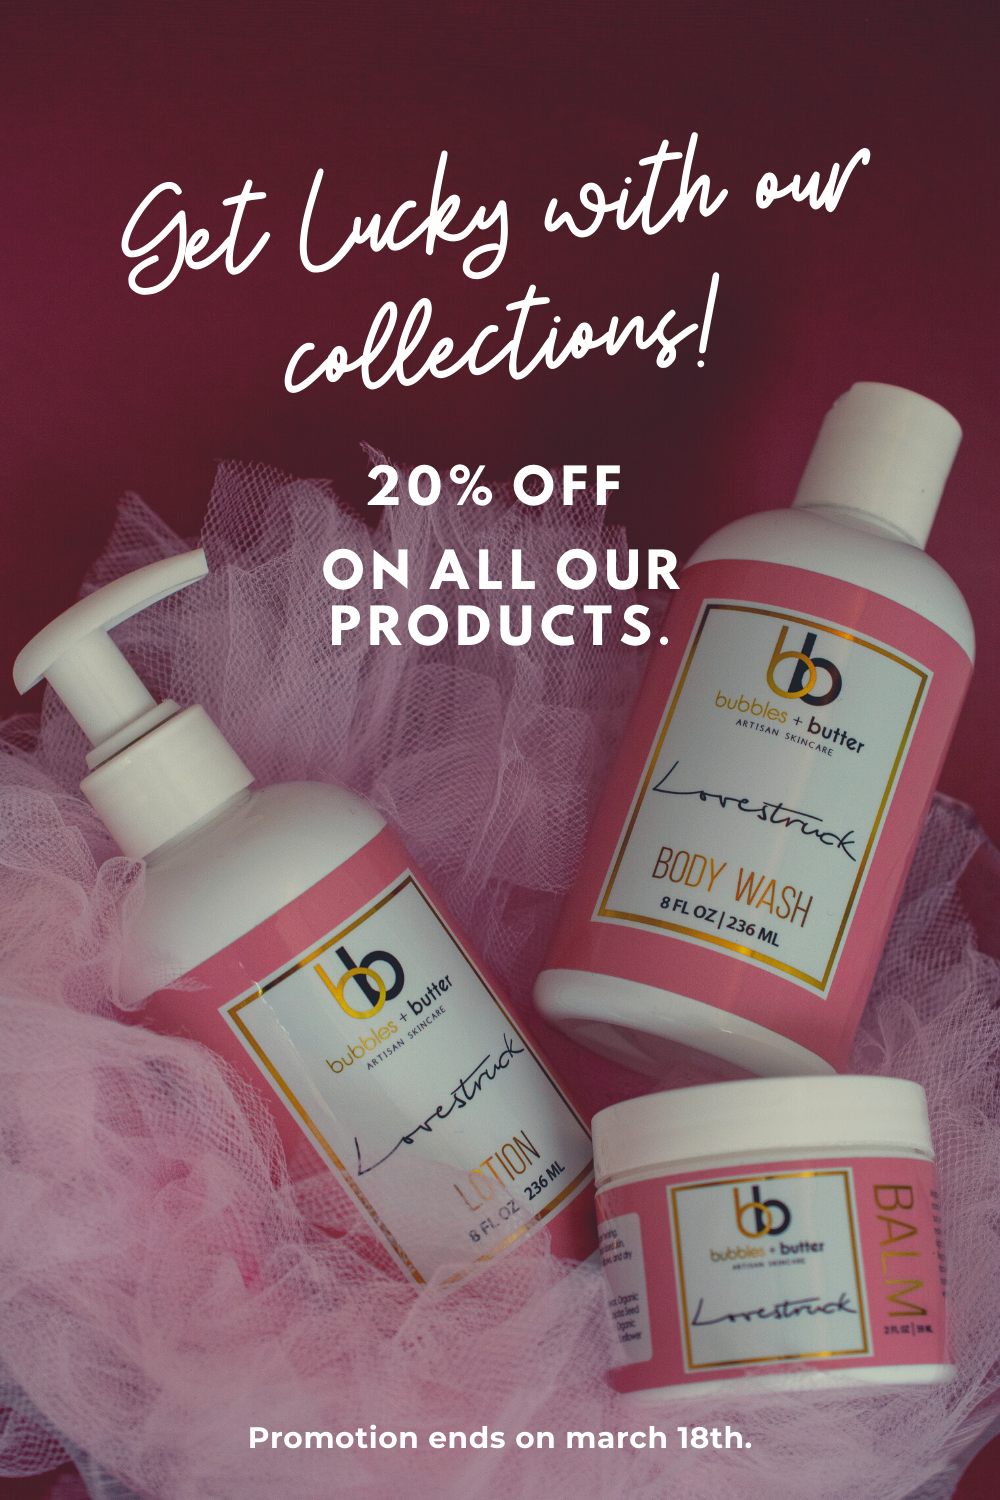 #greatdeals ✨ | The arrival of St. Patty's Day means we've made it through 11 weeks of the year already  If you're feeling the work lag or the mid-month slump, get that mojo back with 20% off Bubbles & Butter sitewide! [ends March 18th | Limited stock] Tap the picture and find out more about the products in offer.  Send us a message, happiness is one balms away!